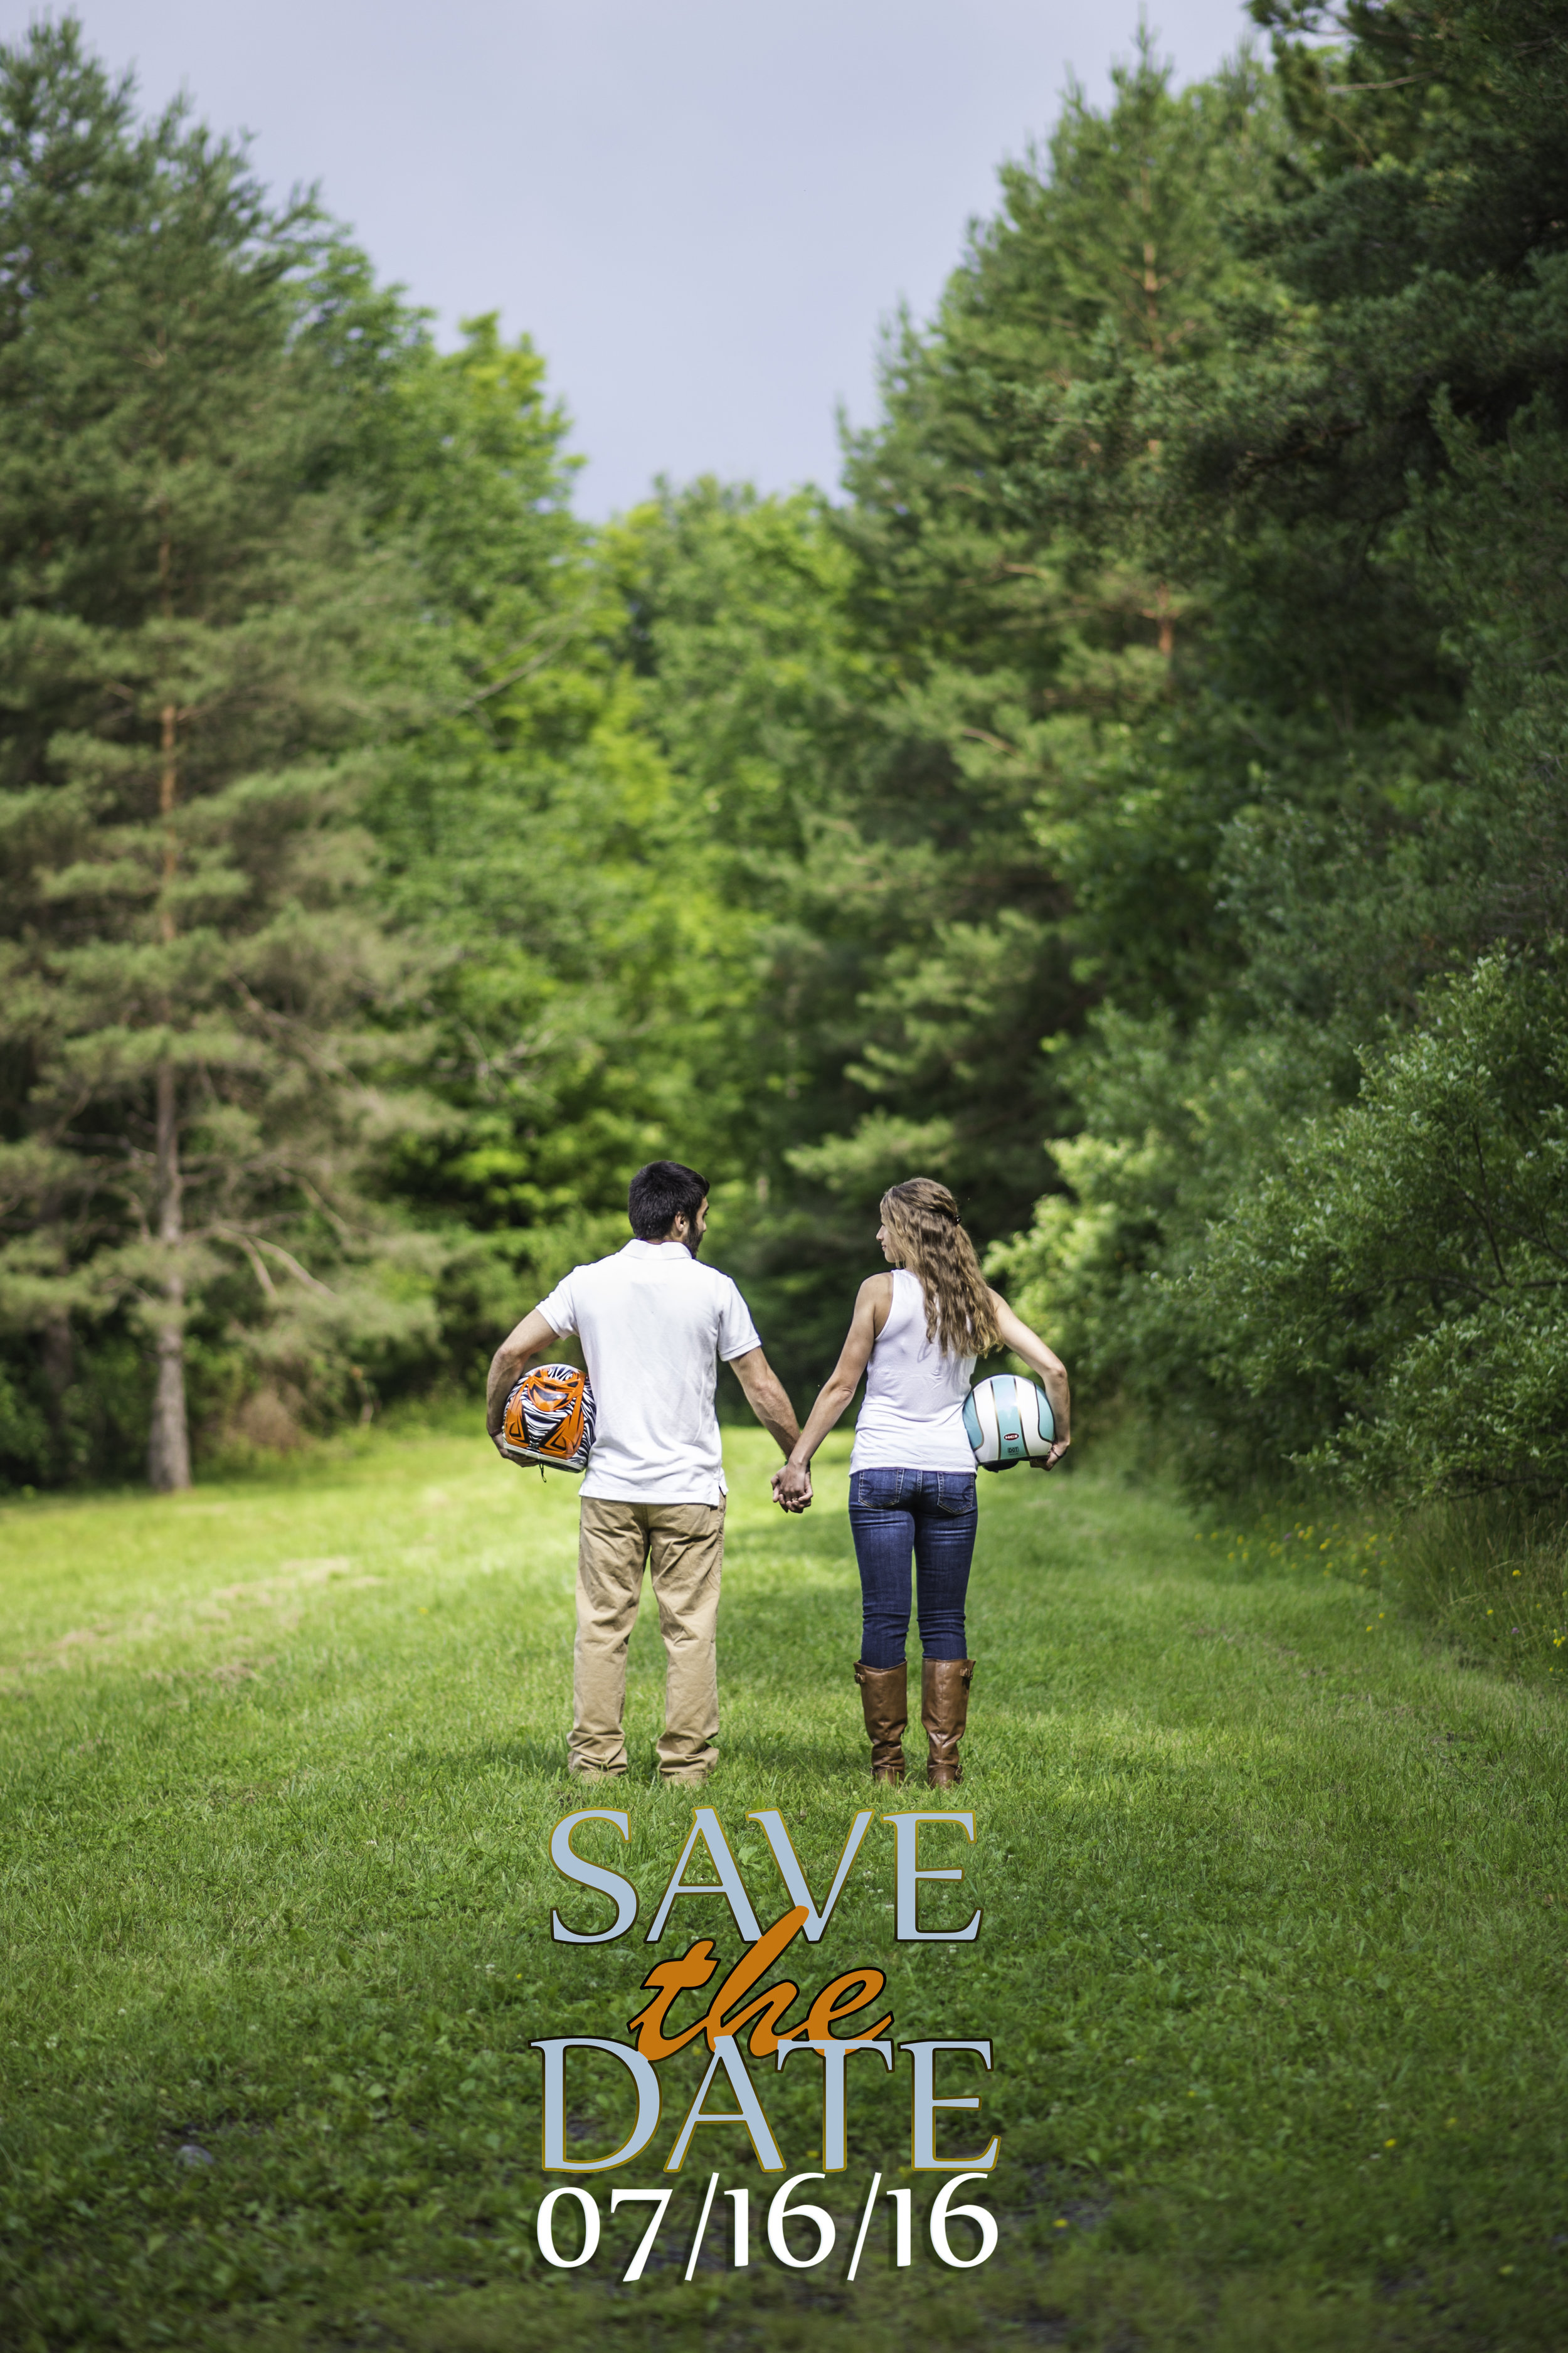 Erica and Vinny - Save the Date2.jpg